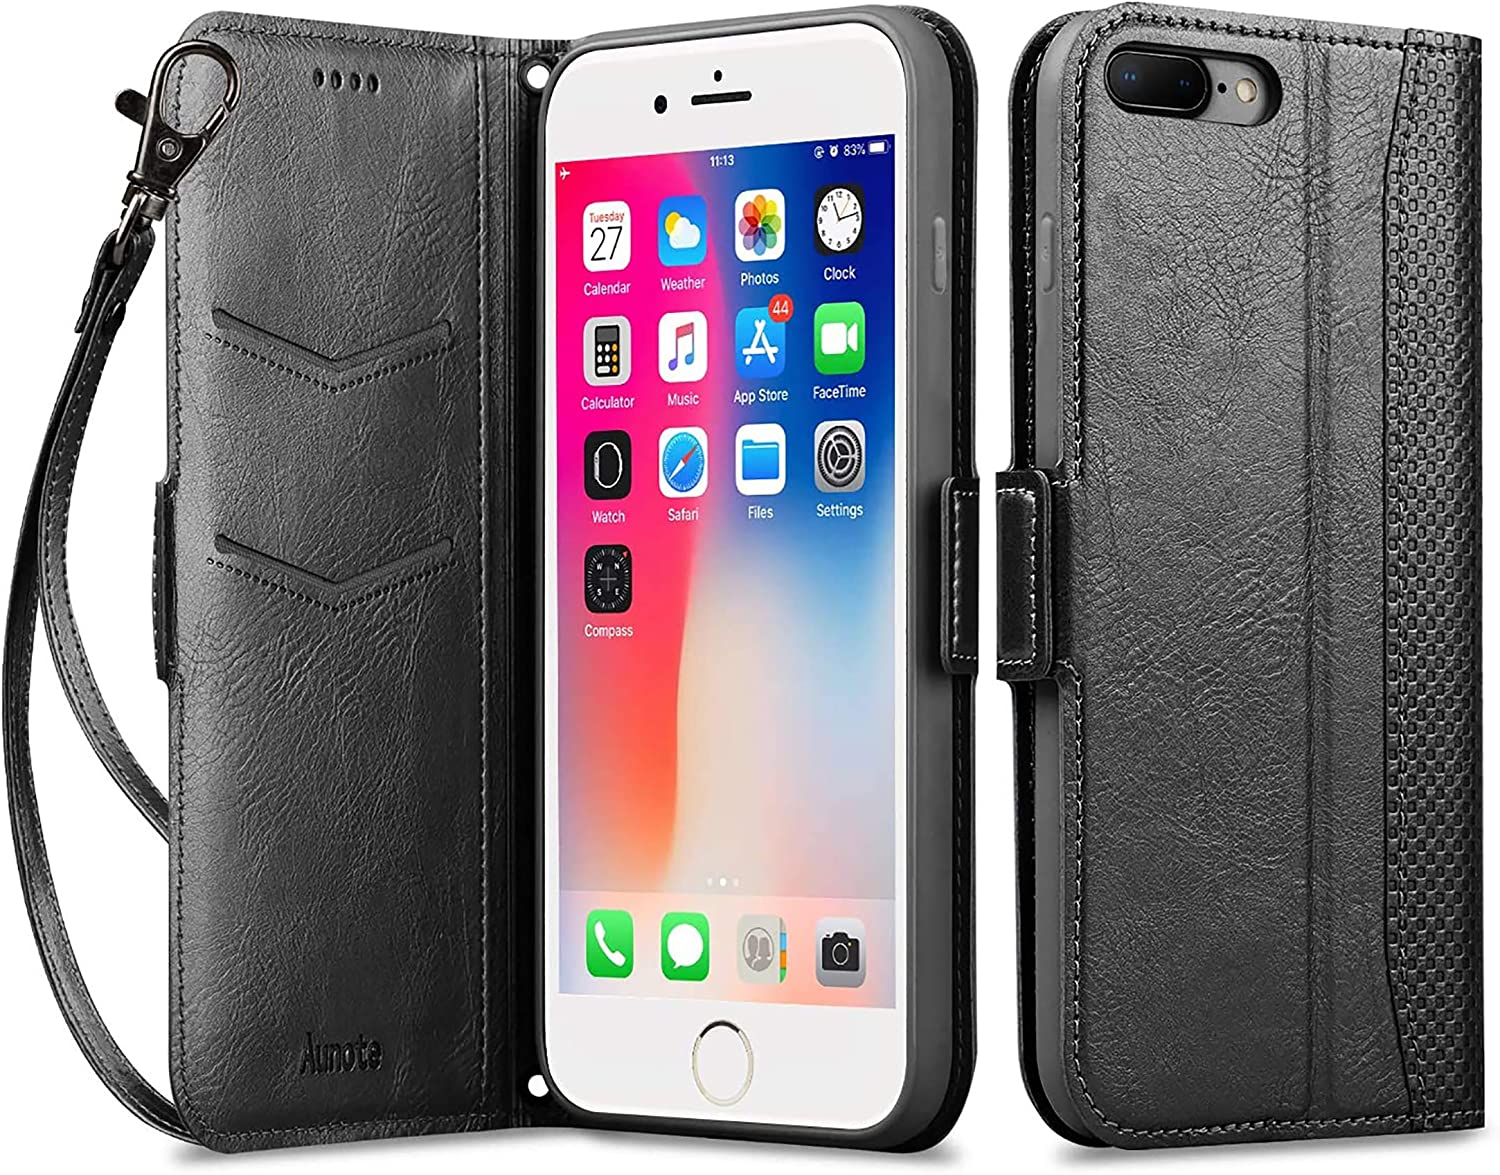 "Aunote iPhone 8 Plus Case, iPhone 7 Plus Leather Wallet Case Card Holder with Kickstand Function, Card Slots,Magnetic Closur for Apple iPhone 7 Plus/8 Plus 5.5"" - Black"